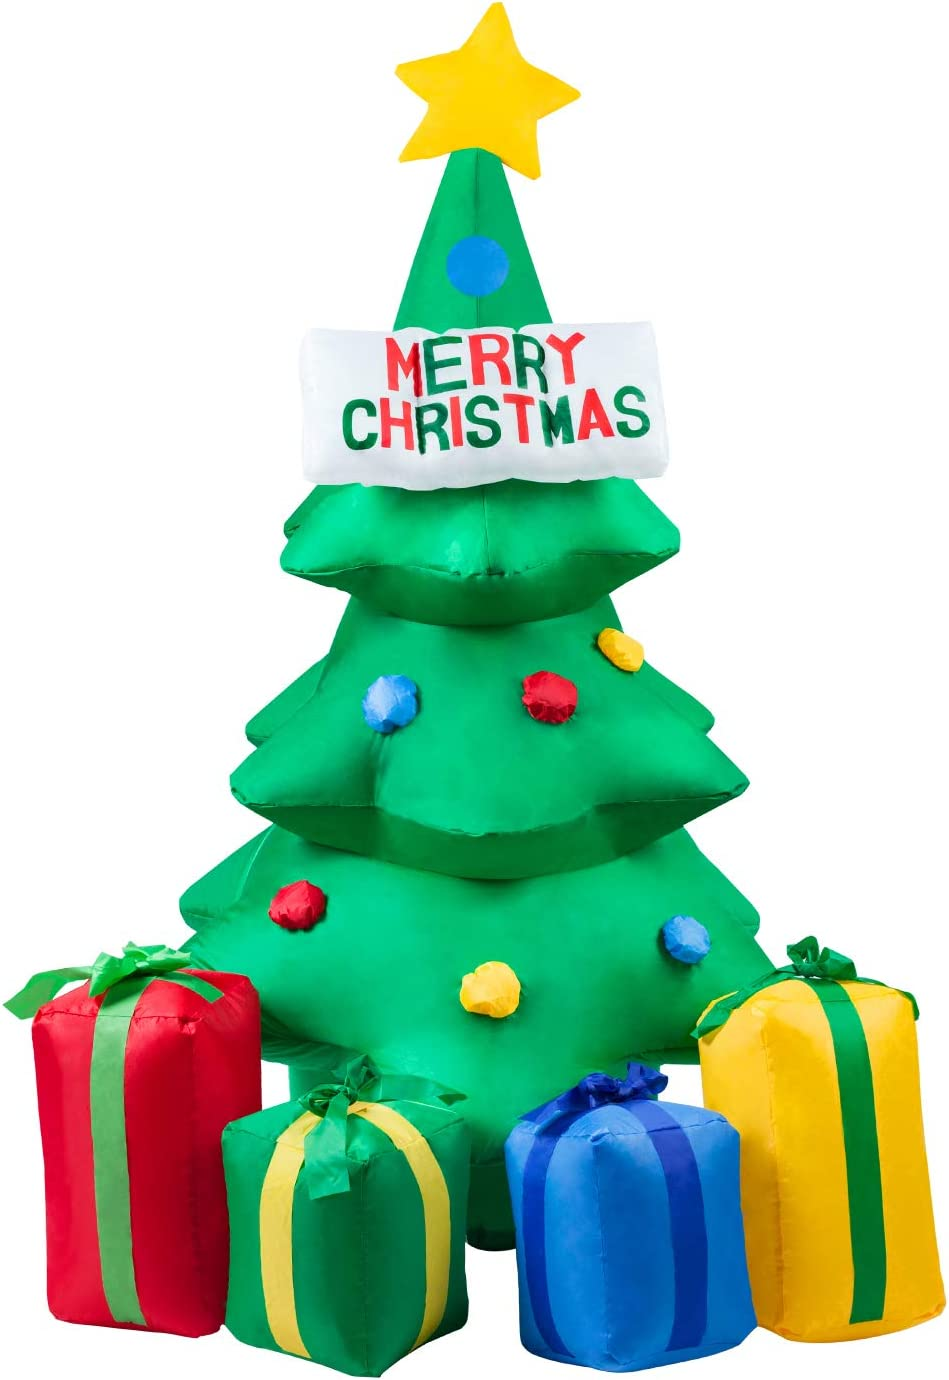 Christmas Inflatables Tree, 5Ft Christmas Decorations Outdoor Inflatable Christmas Tree Blow Up Christmas Decorations LED Lights Fan Tethers Stakes for Outdoor, Yard Decor, Garden, Lawn